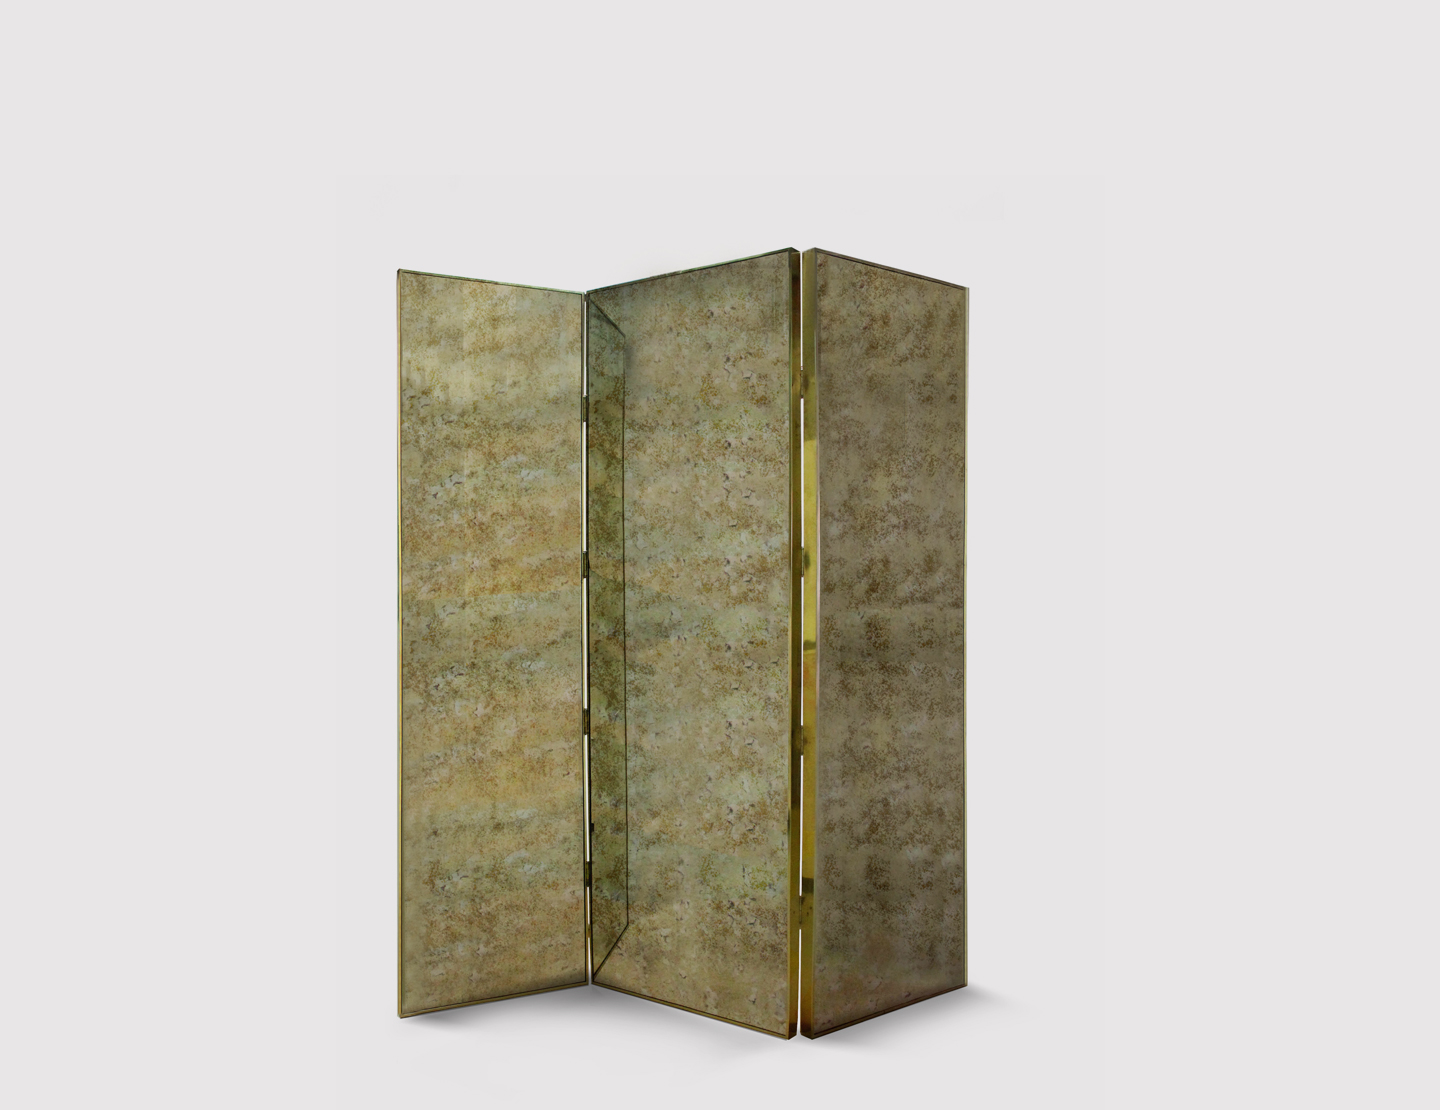 JEZEBEL Screen A room divider screen by Koket